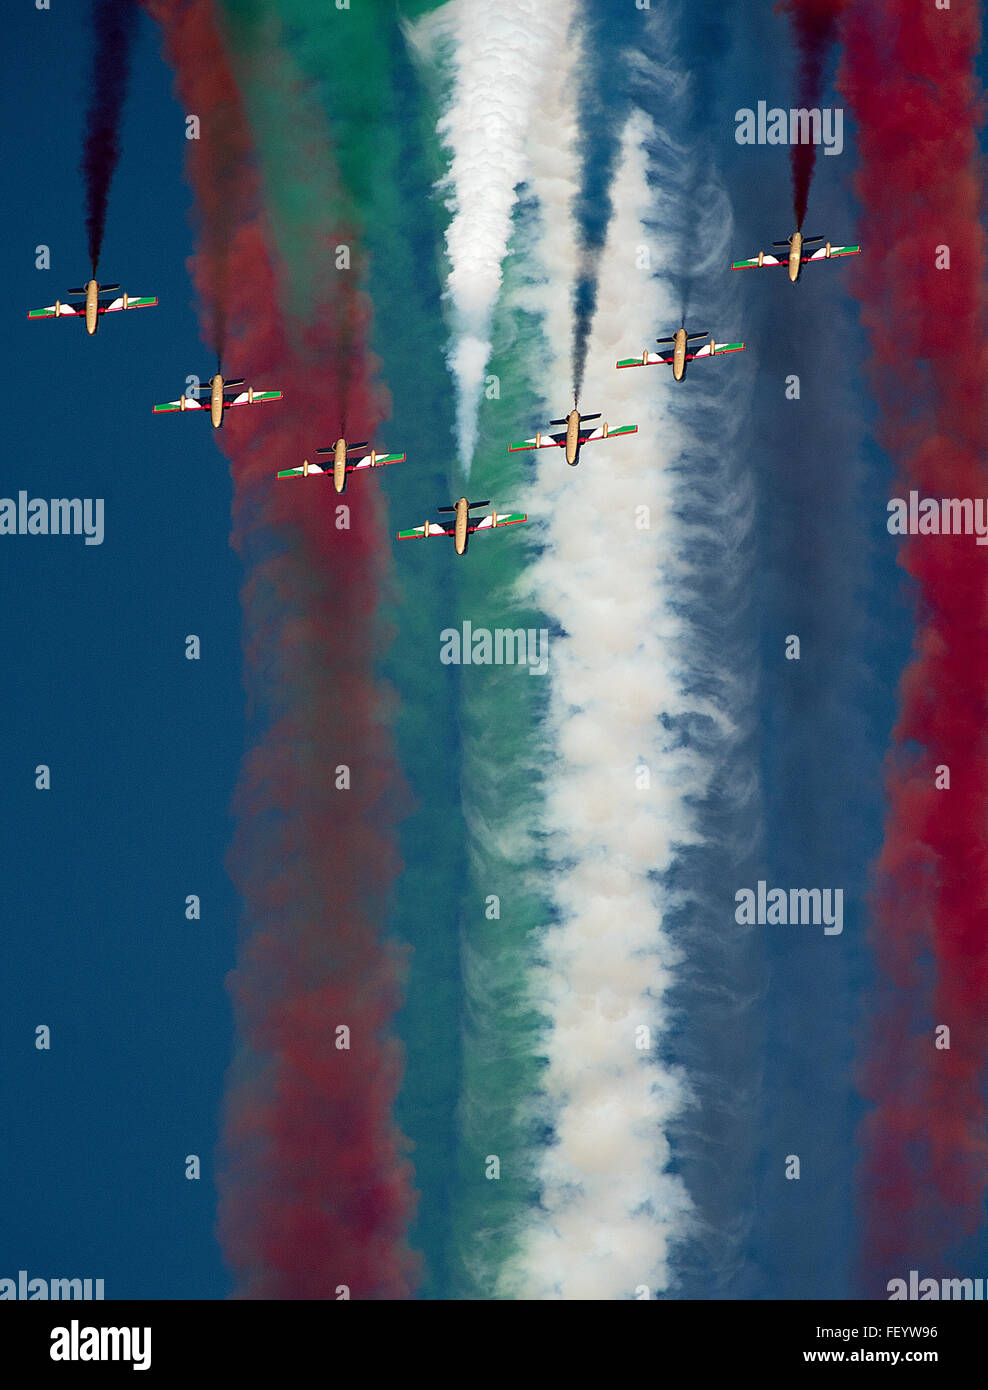 """Al Fursan"" (The Knights), the United Arab Emirates Air Force aerobatic display team, flies in formation during - Stock Image"